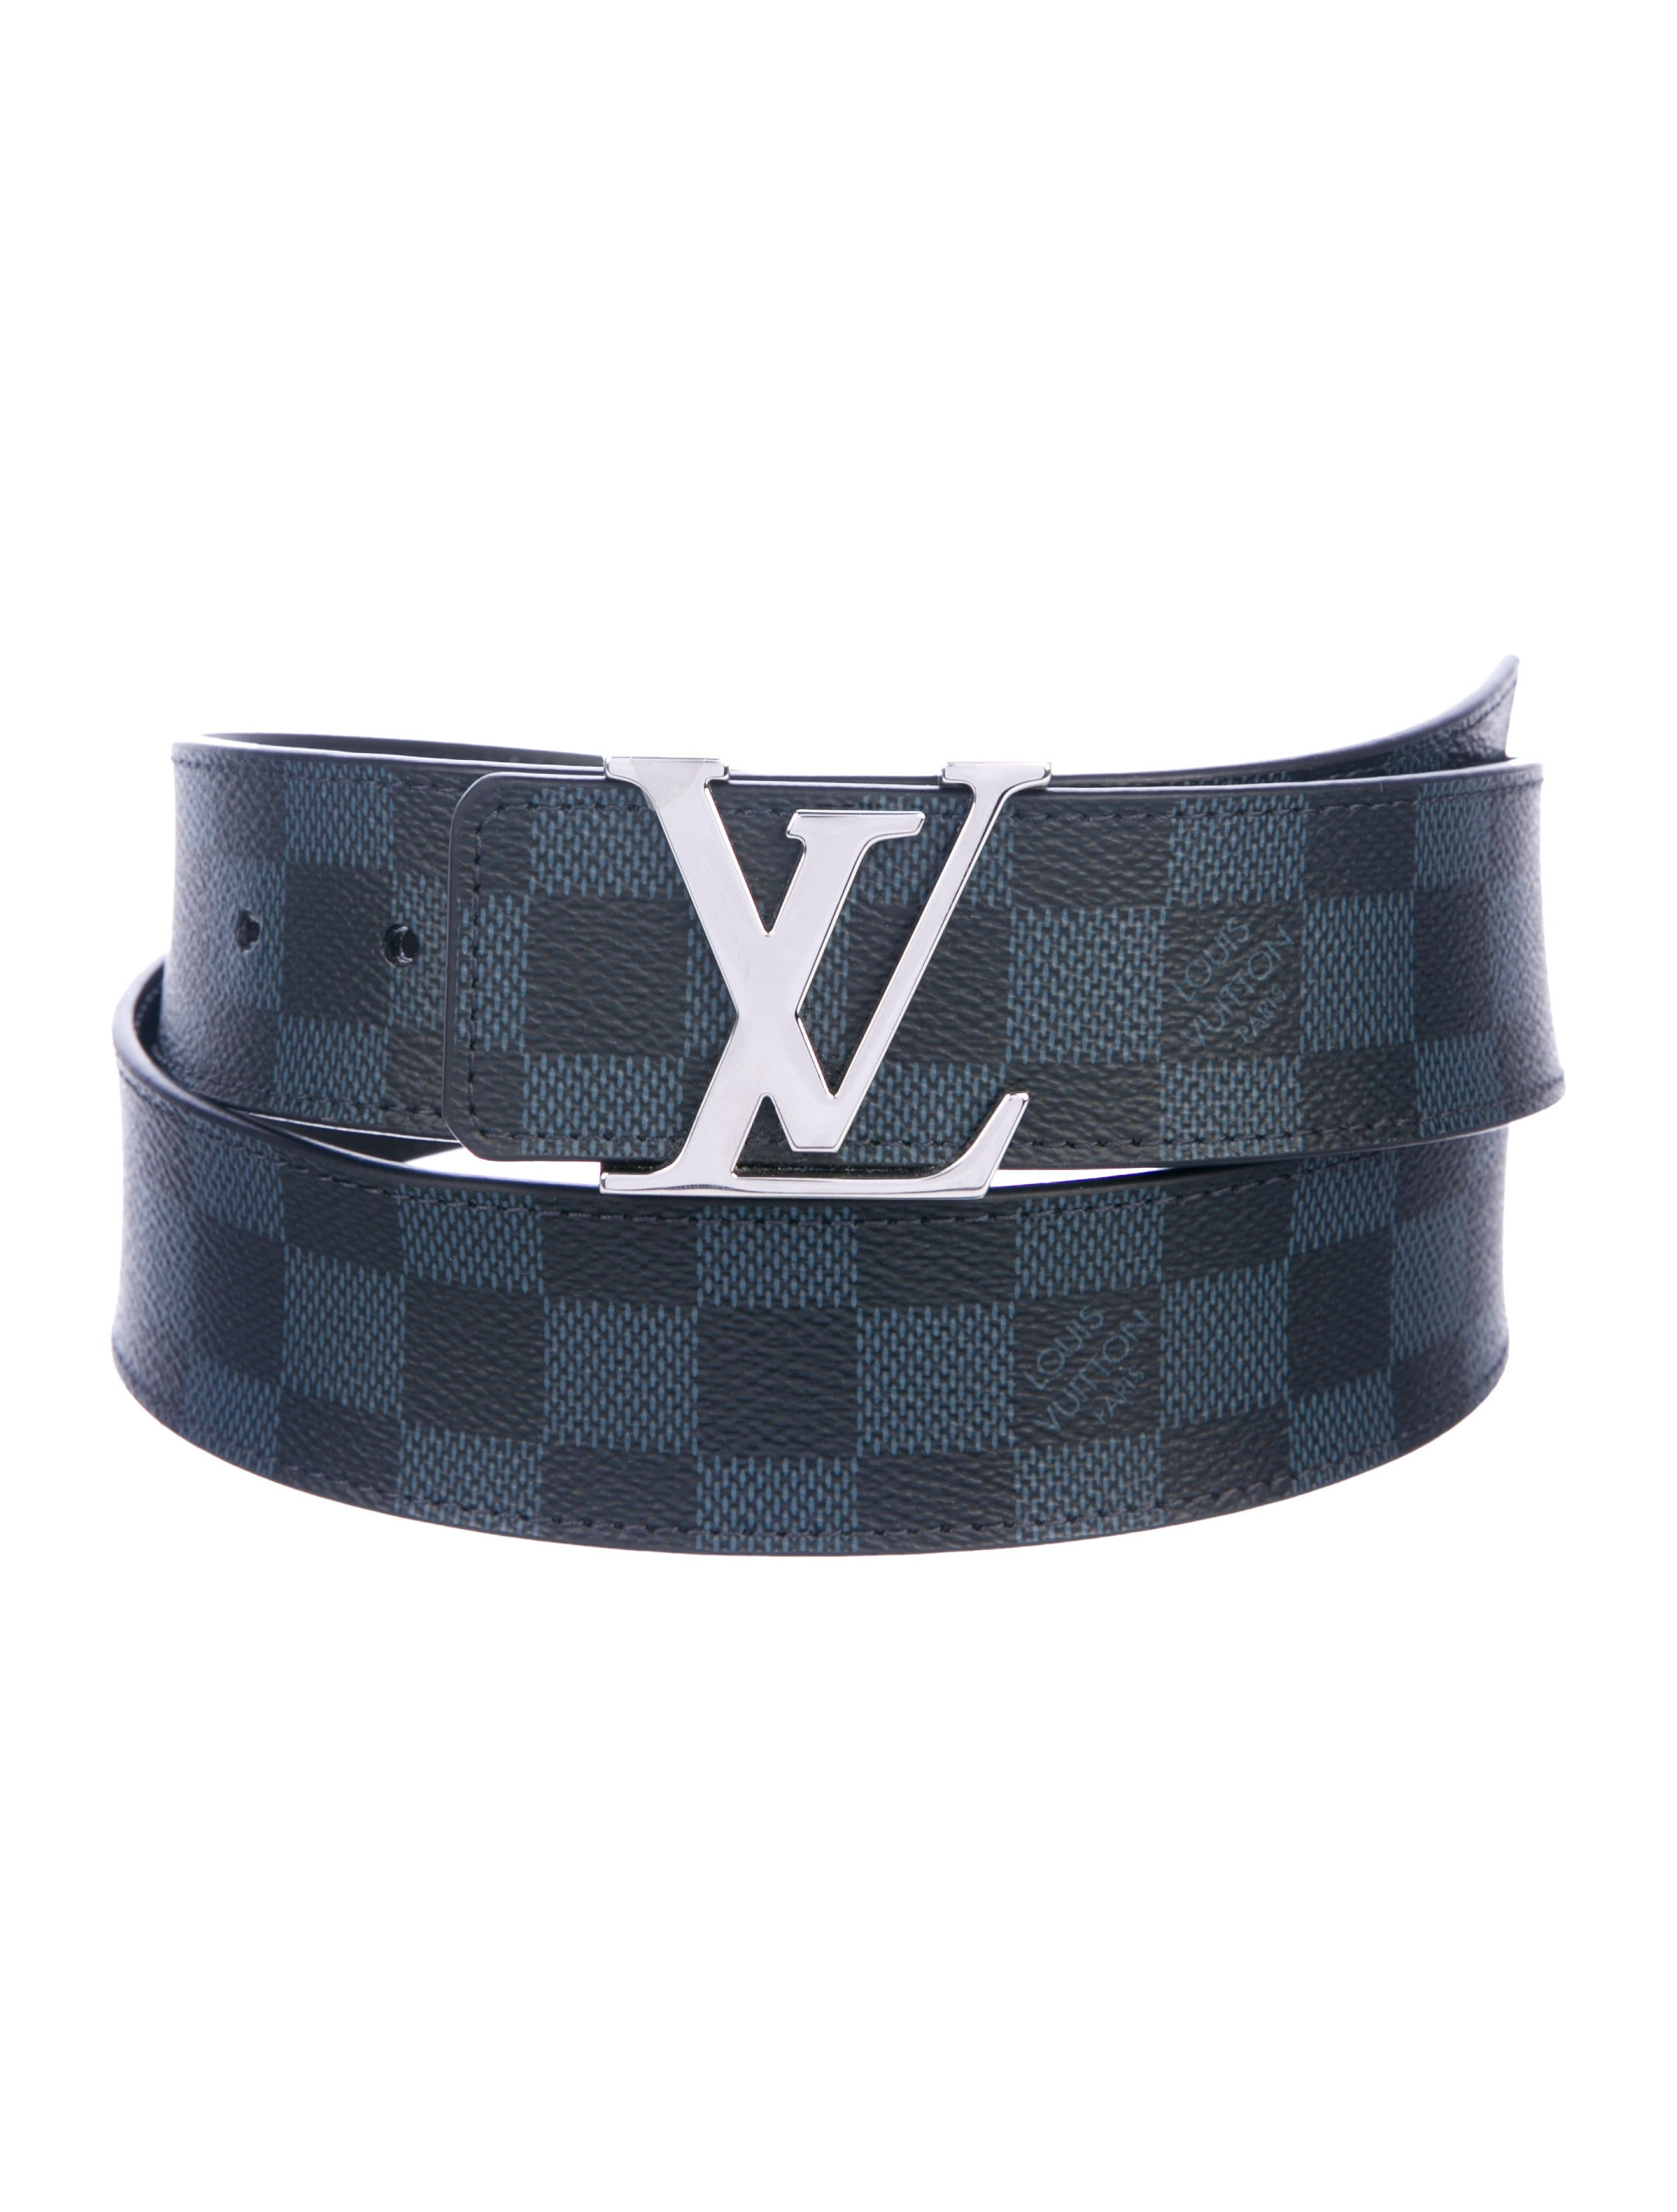 6b3de313655a Louis Vuitton 2018 Damier Cobalt Initiales 40MM Belt - Accessories ...